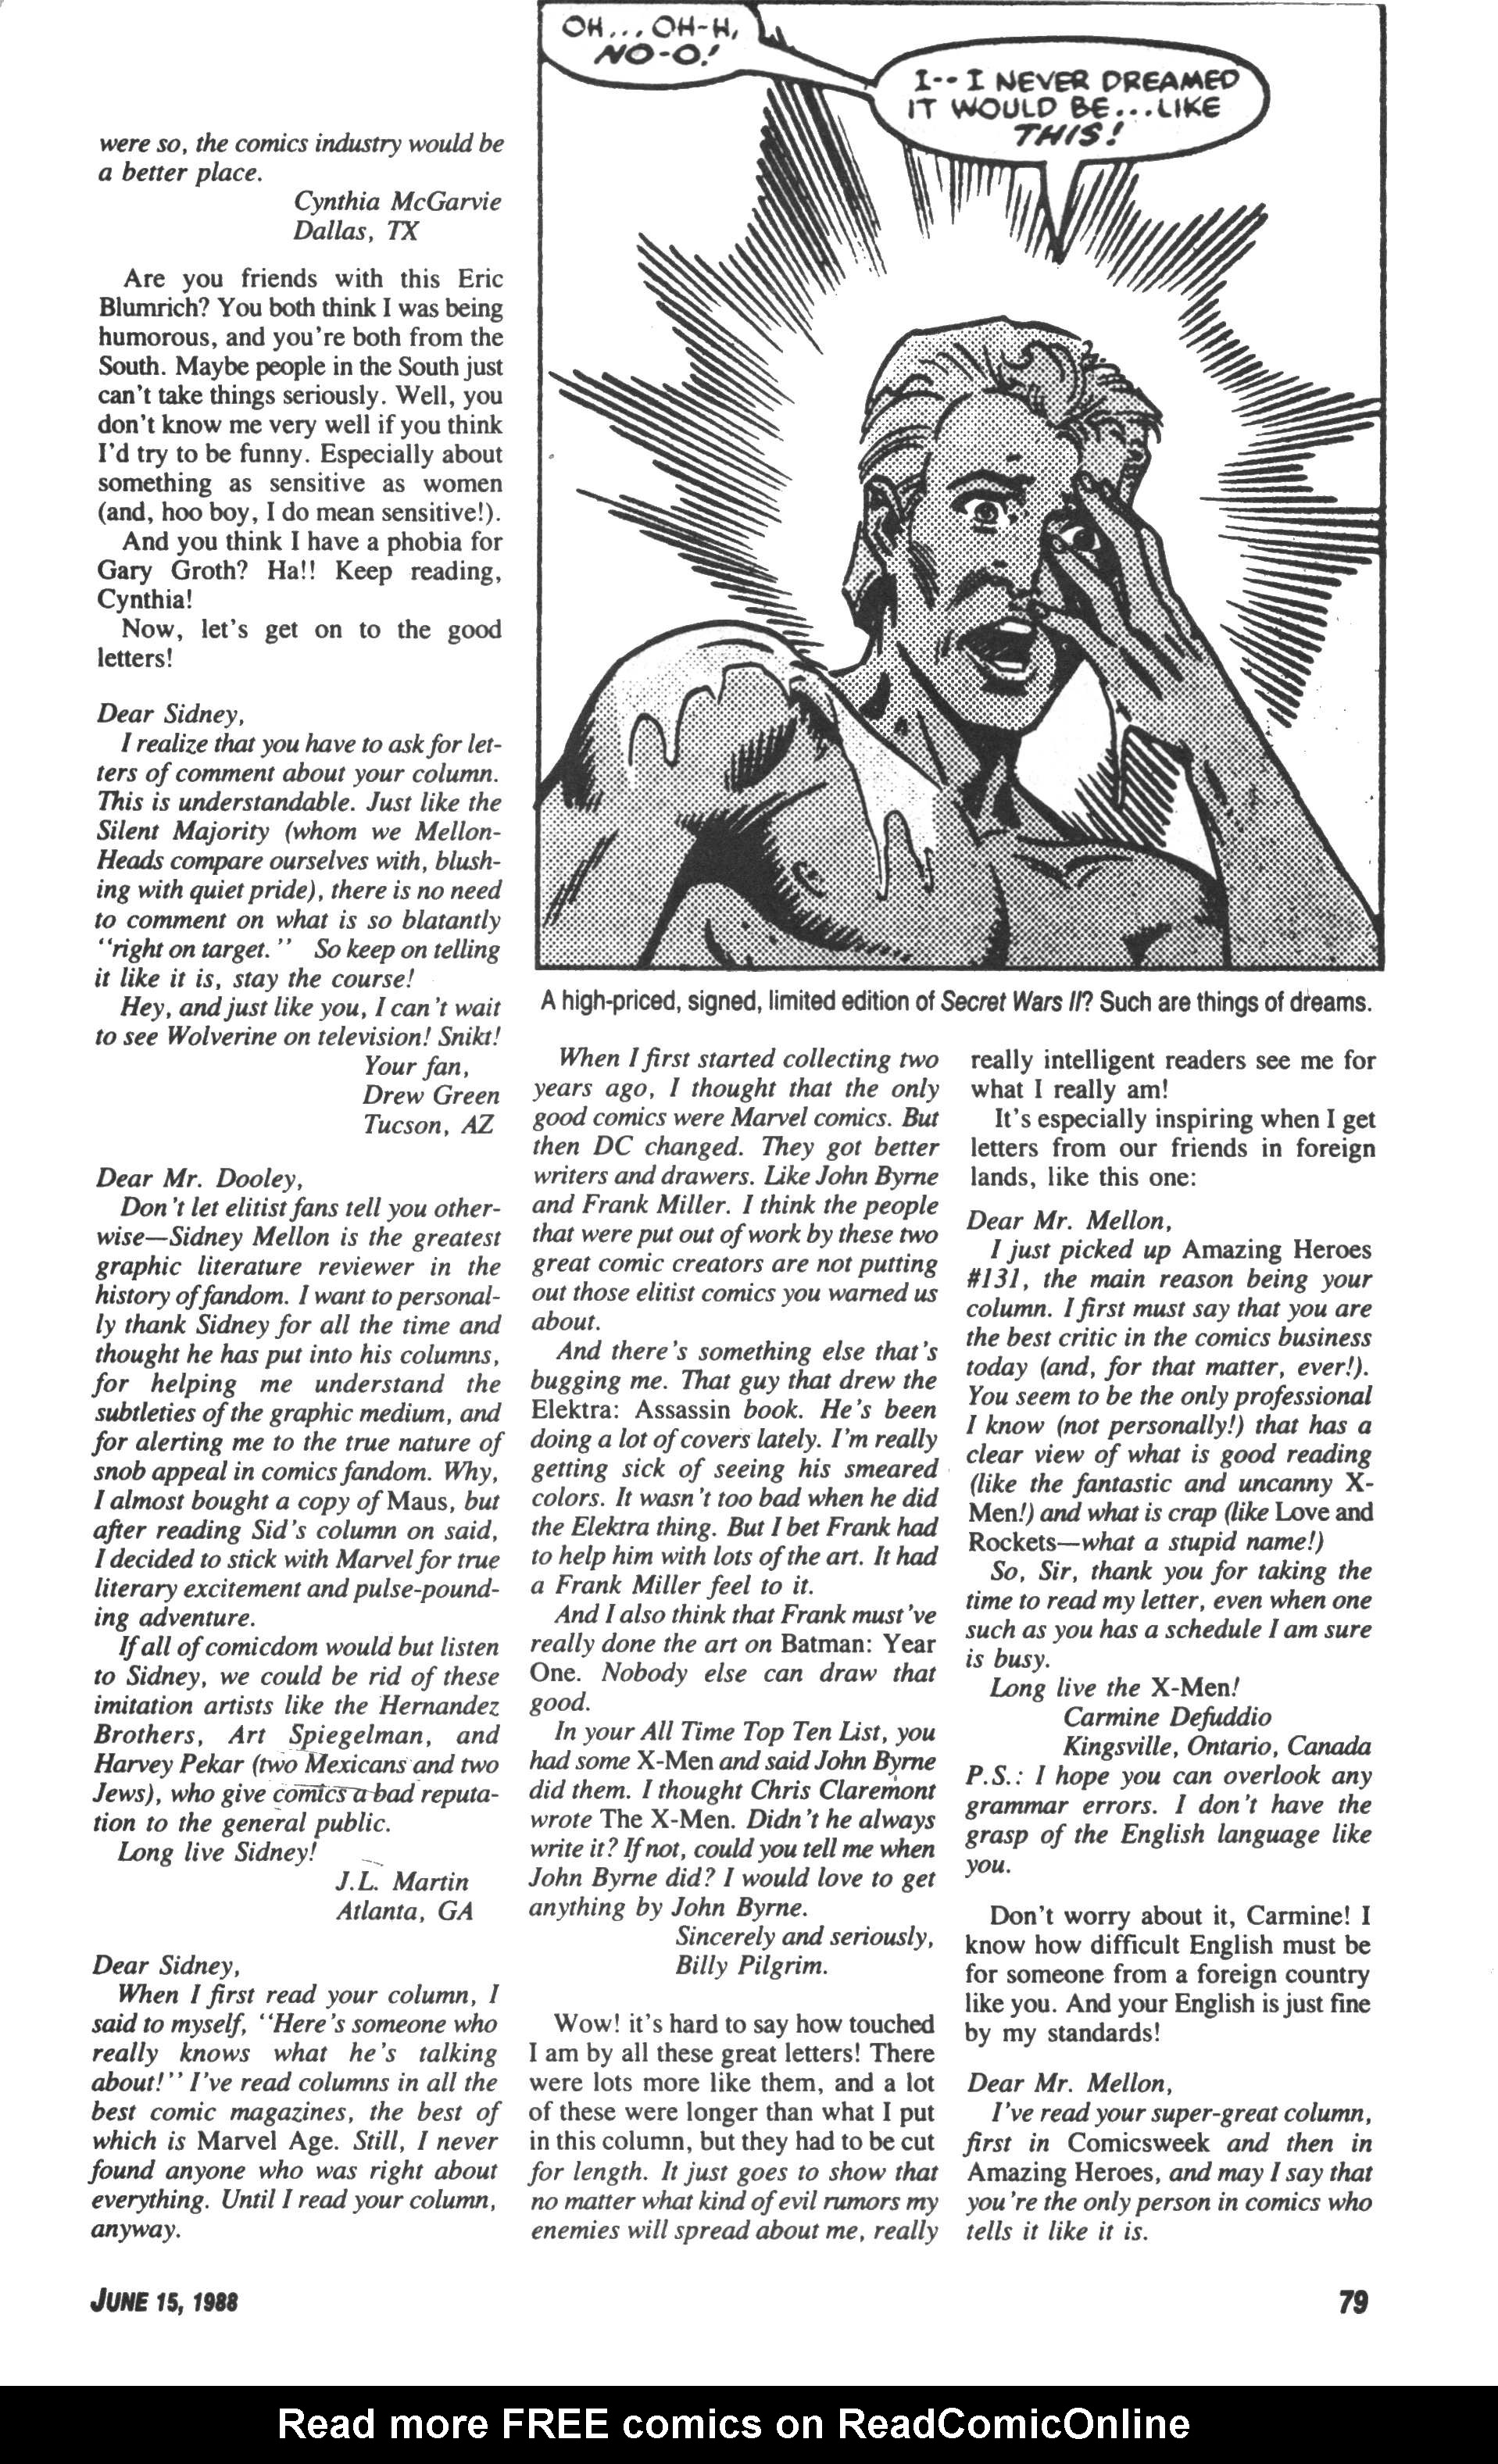 Read online Amazing Heroes comic -  Issue #143 - 79